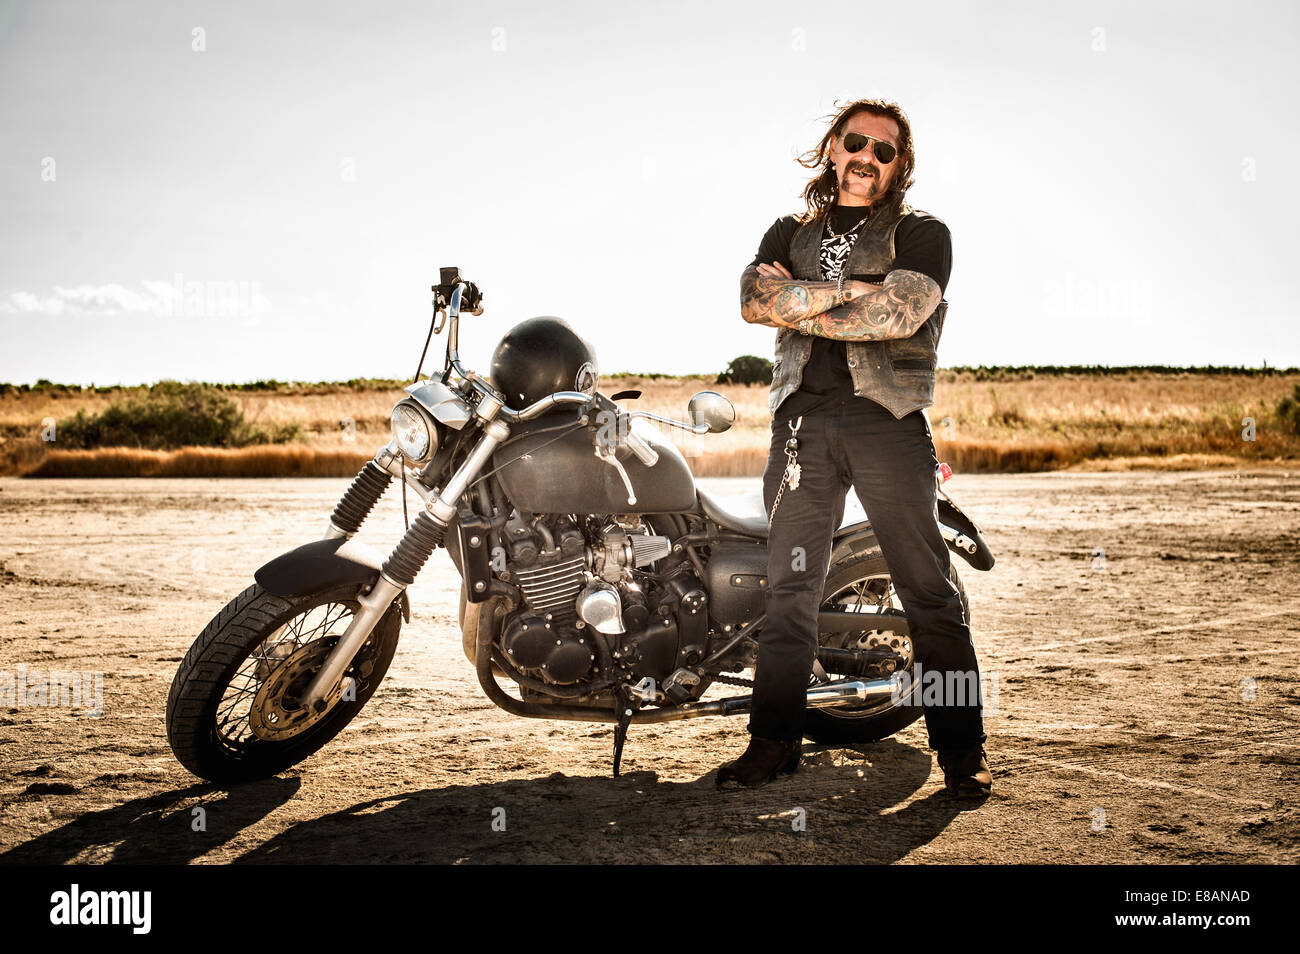 Portrait of mature male motorcyclist on arid plain, Cagliari, Sardinia, Italy - Stock Image